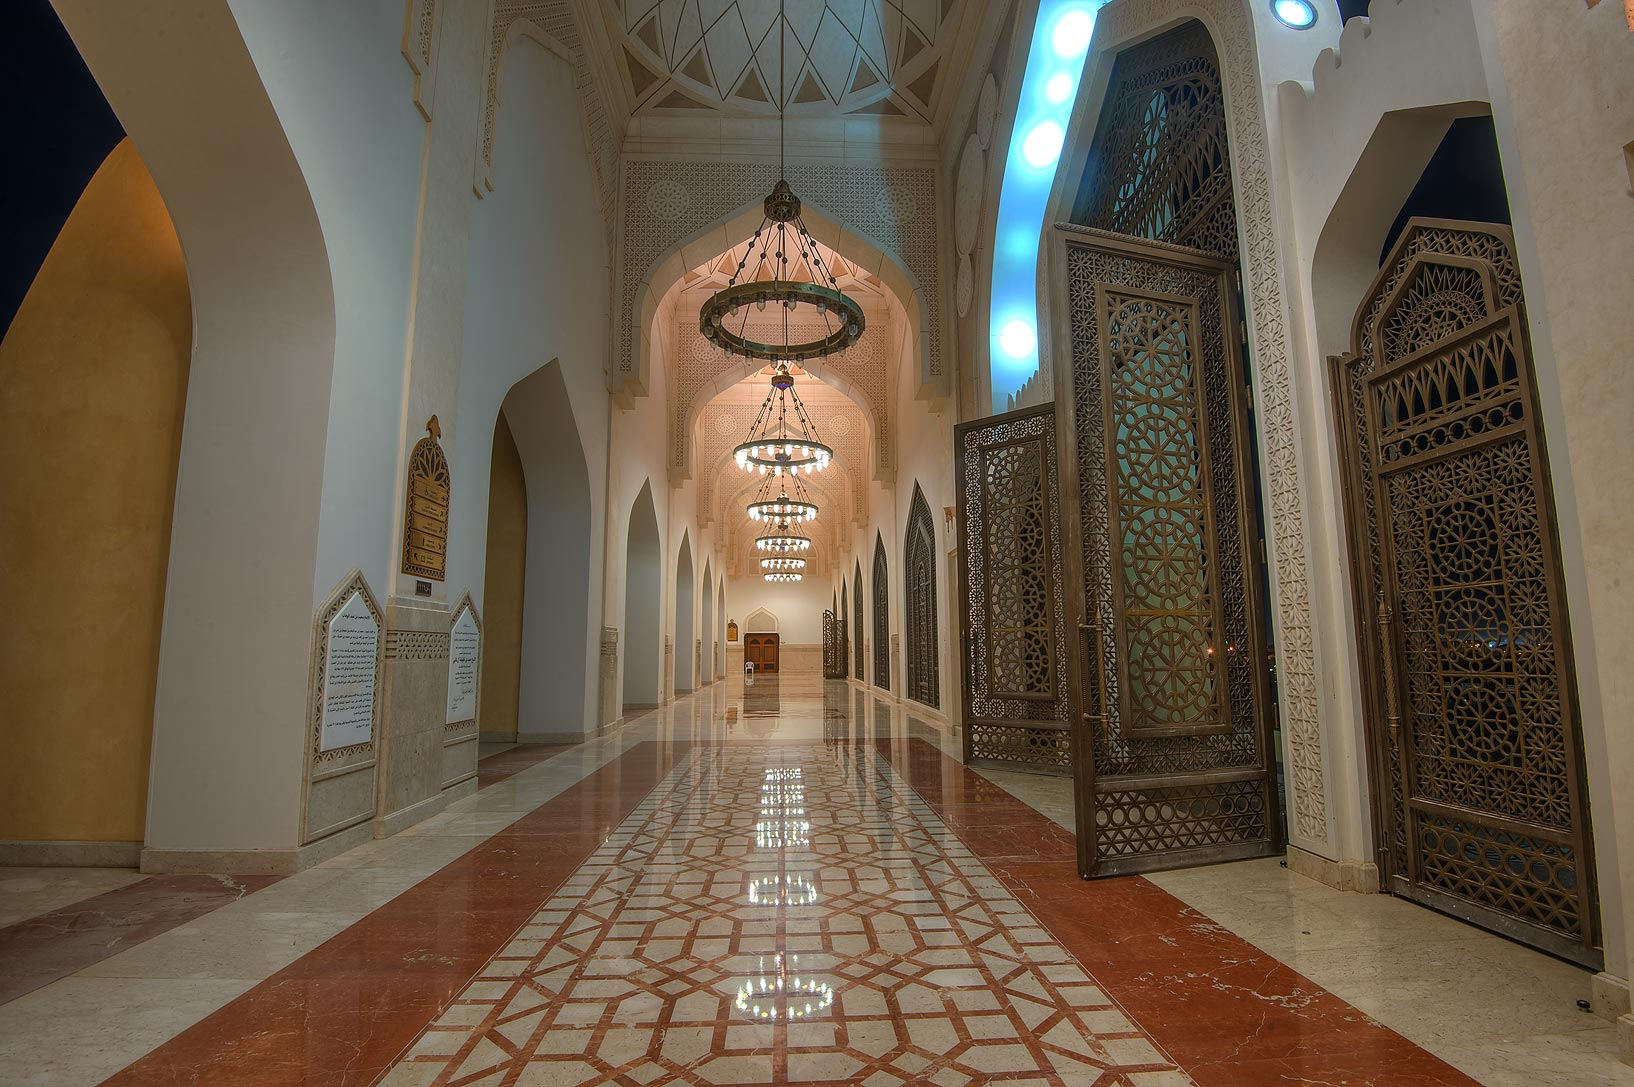 Corridor of State Mosque (Sheikh Muhammad Ibn Abdul Wahhab Mosque). Doha, Qatar